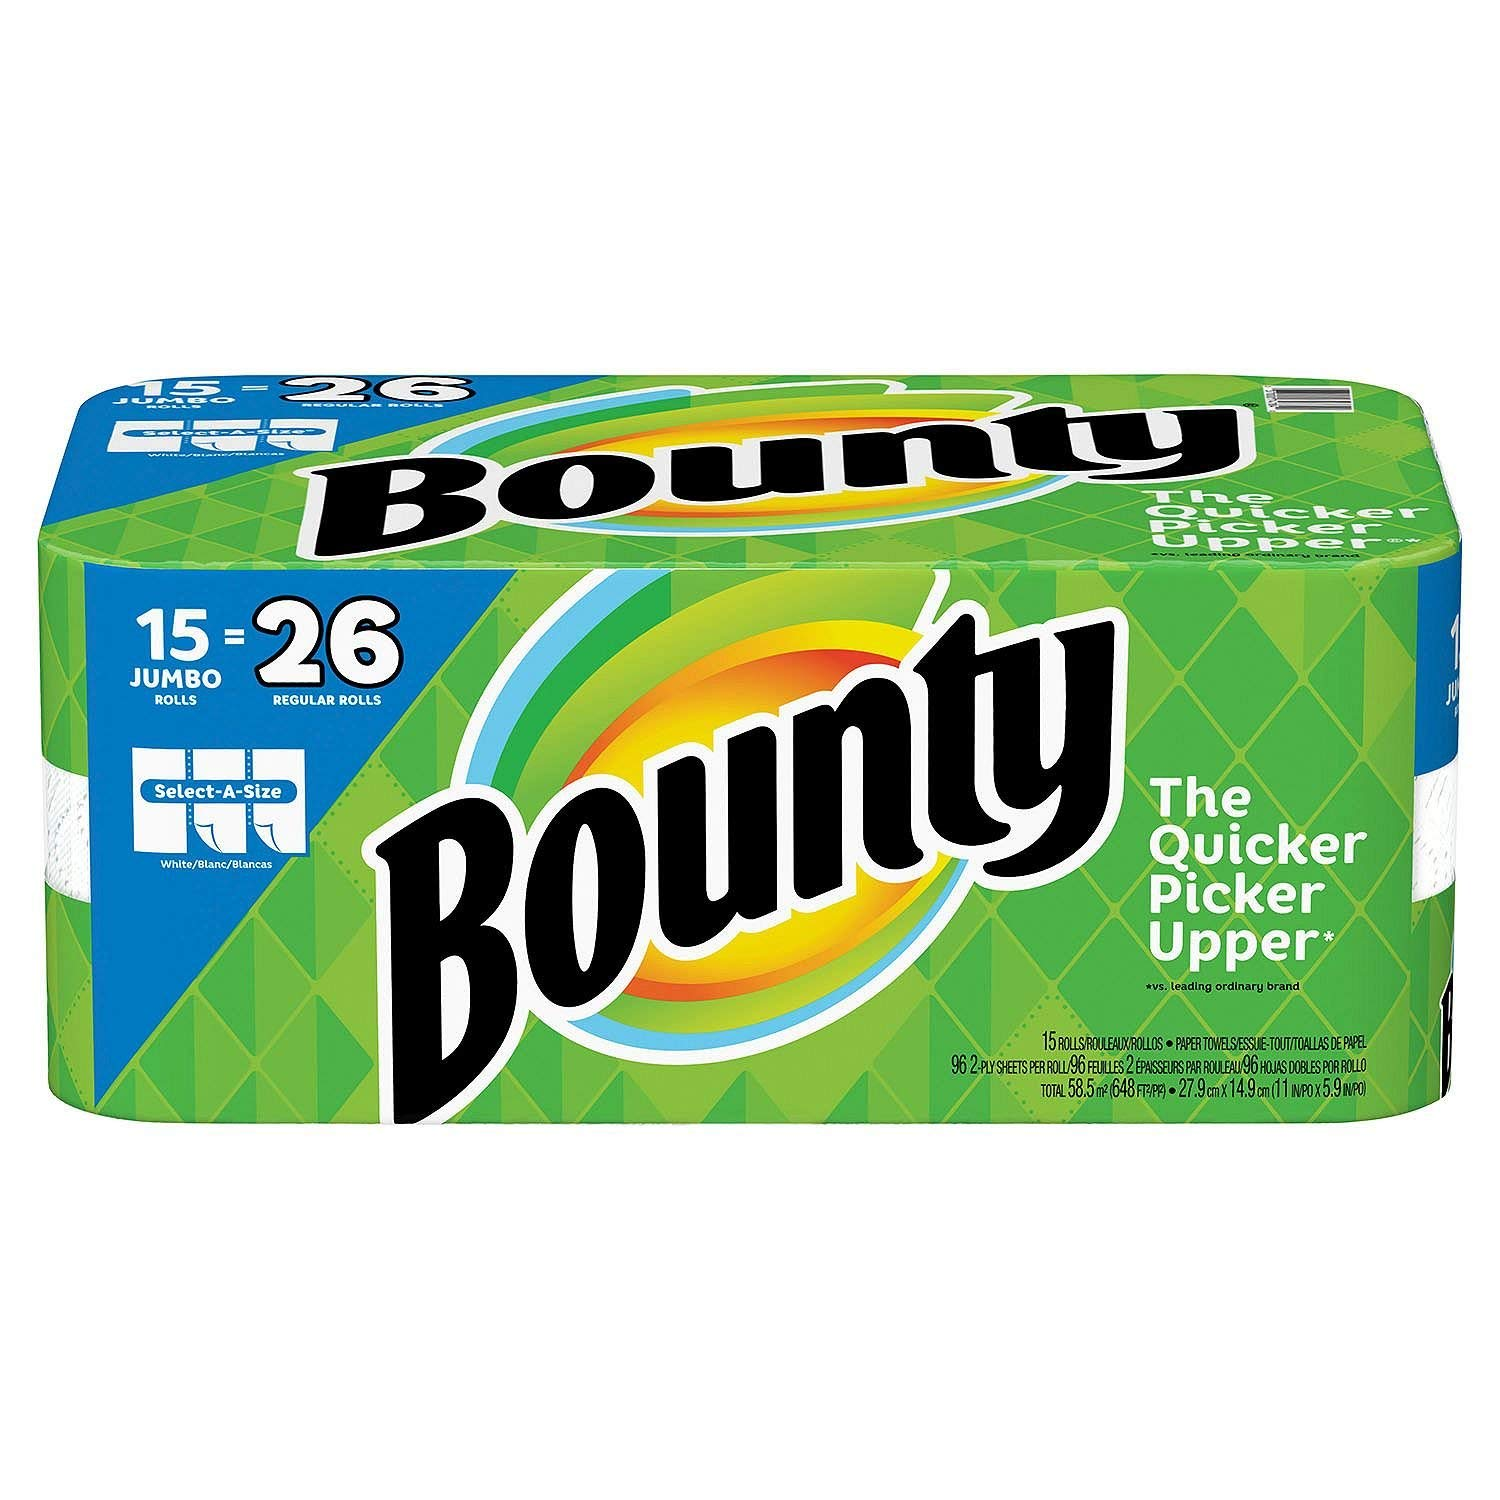 Bounty Select-a-Size Paper Towels, White, Huge Roll (15 Count, Jumbo Rolls)